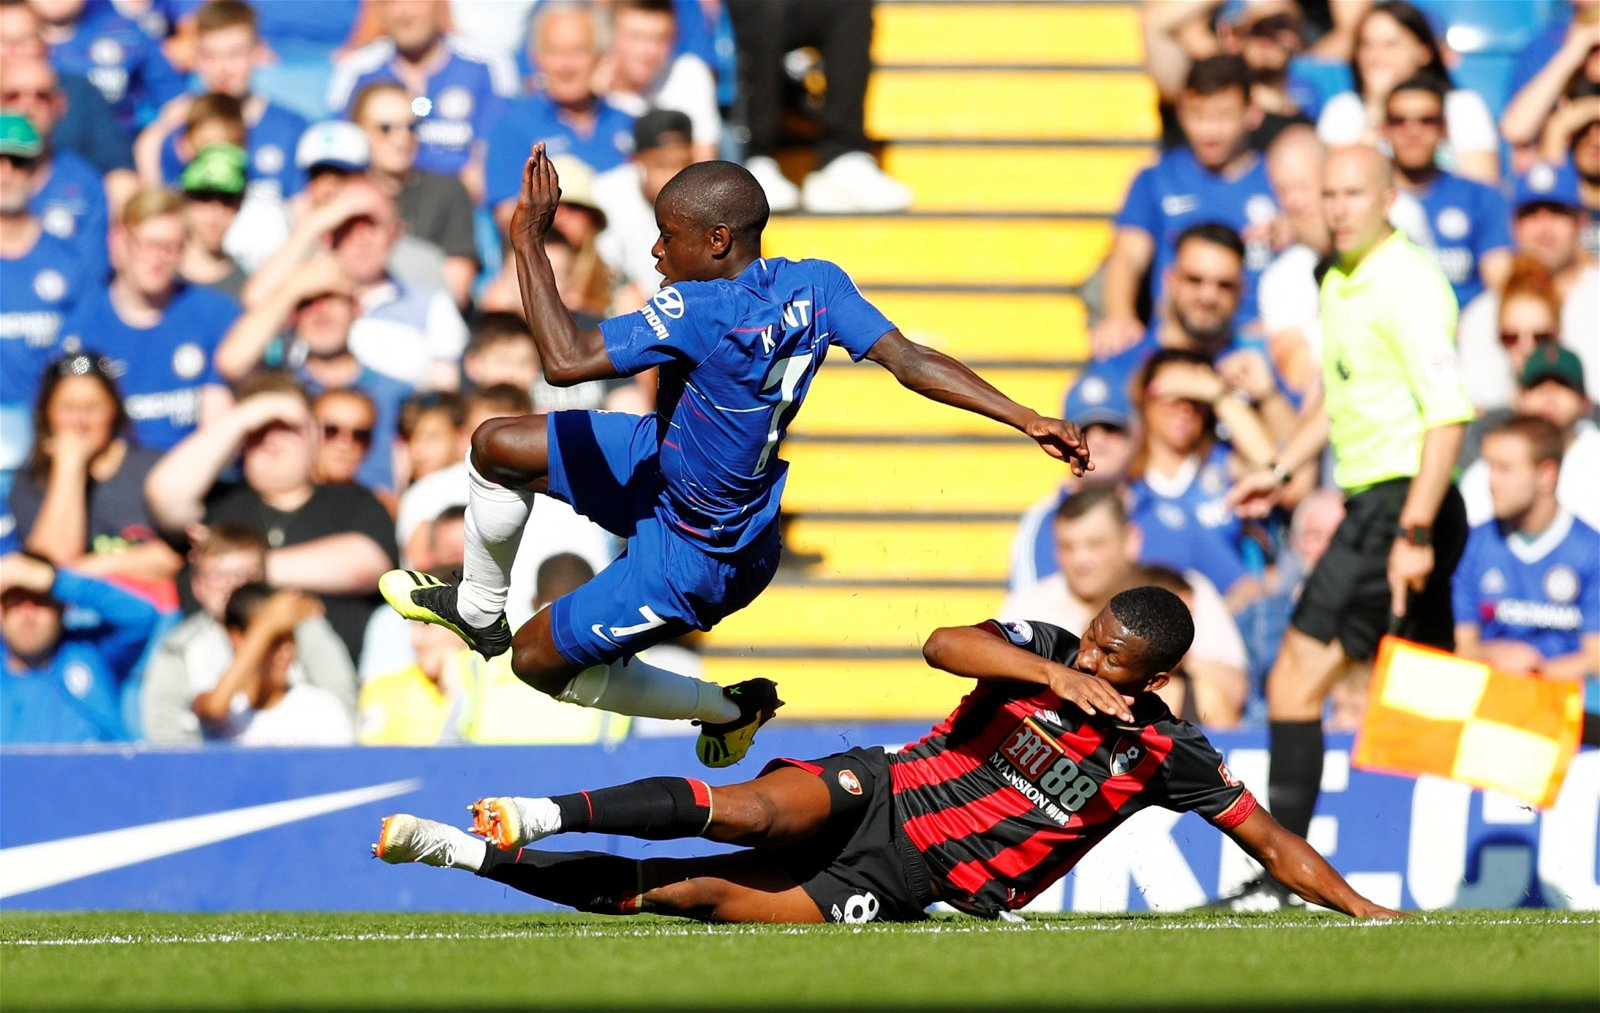 Bournemouth's Jefferson Lerma slides in on Chelsea's N'Golo Kante